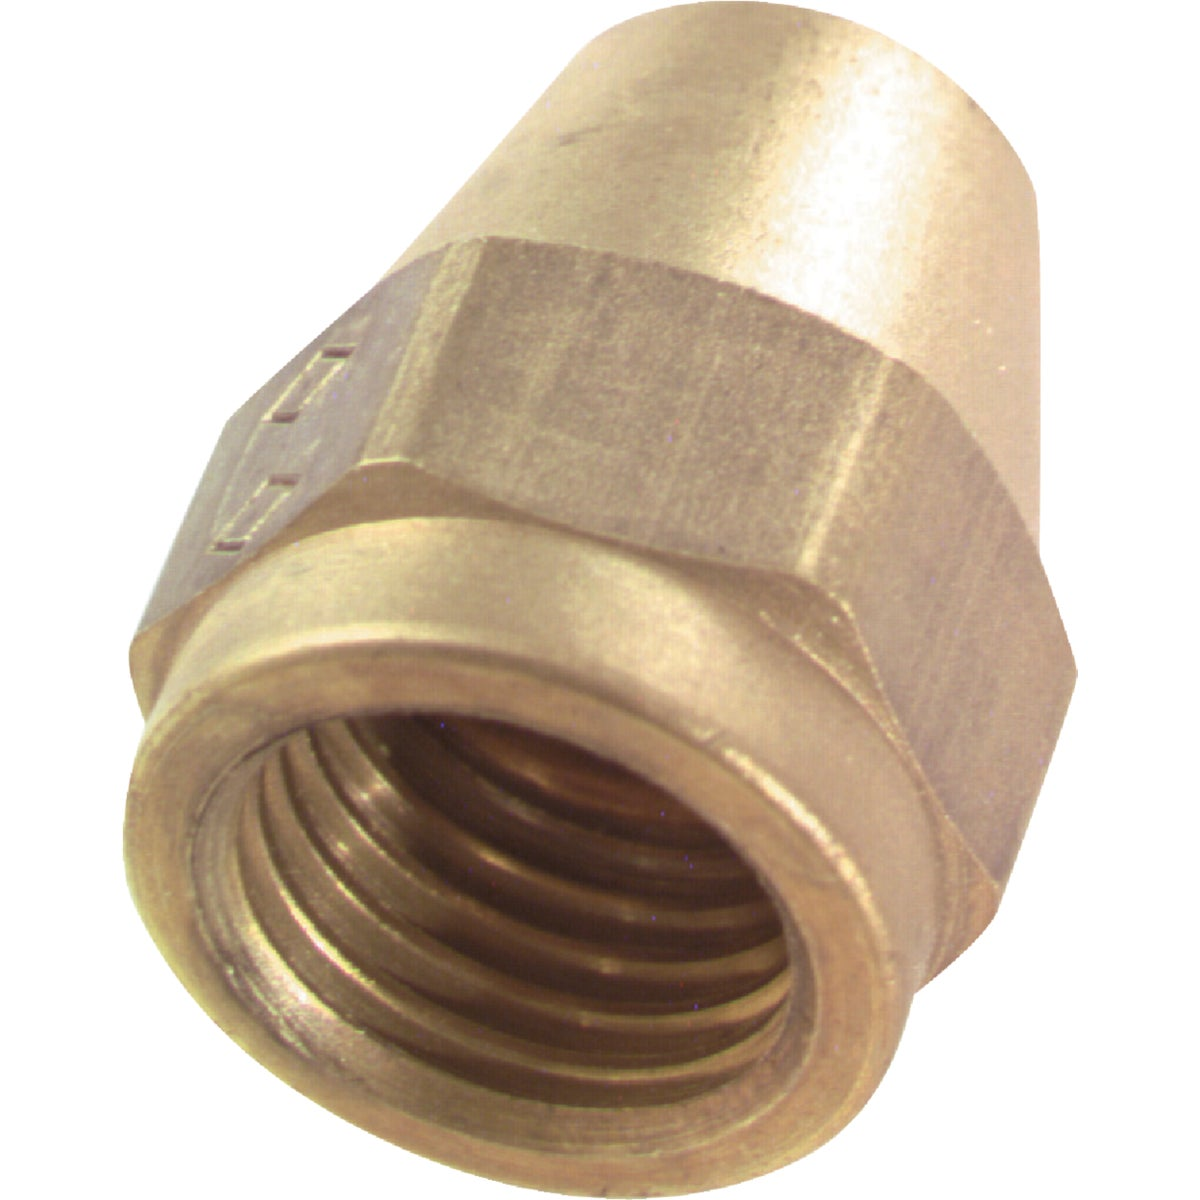 "5/8"" FLARE NUT"